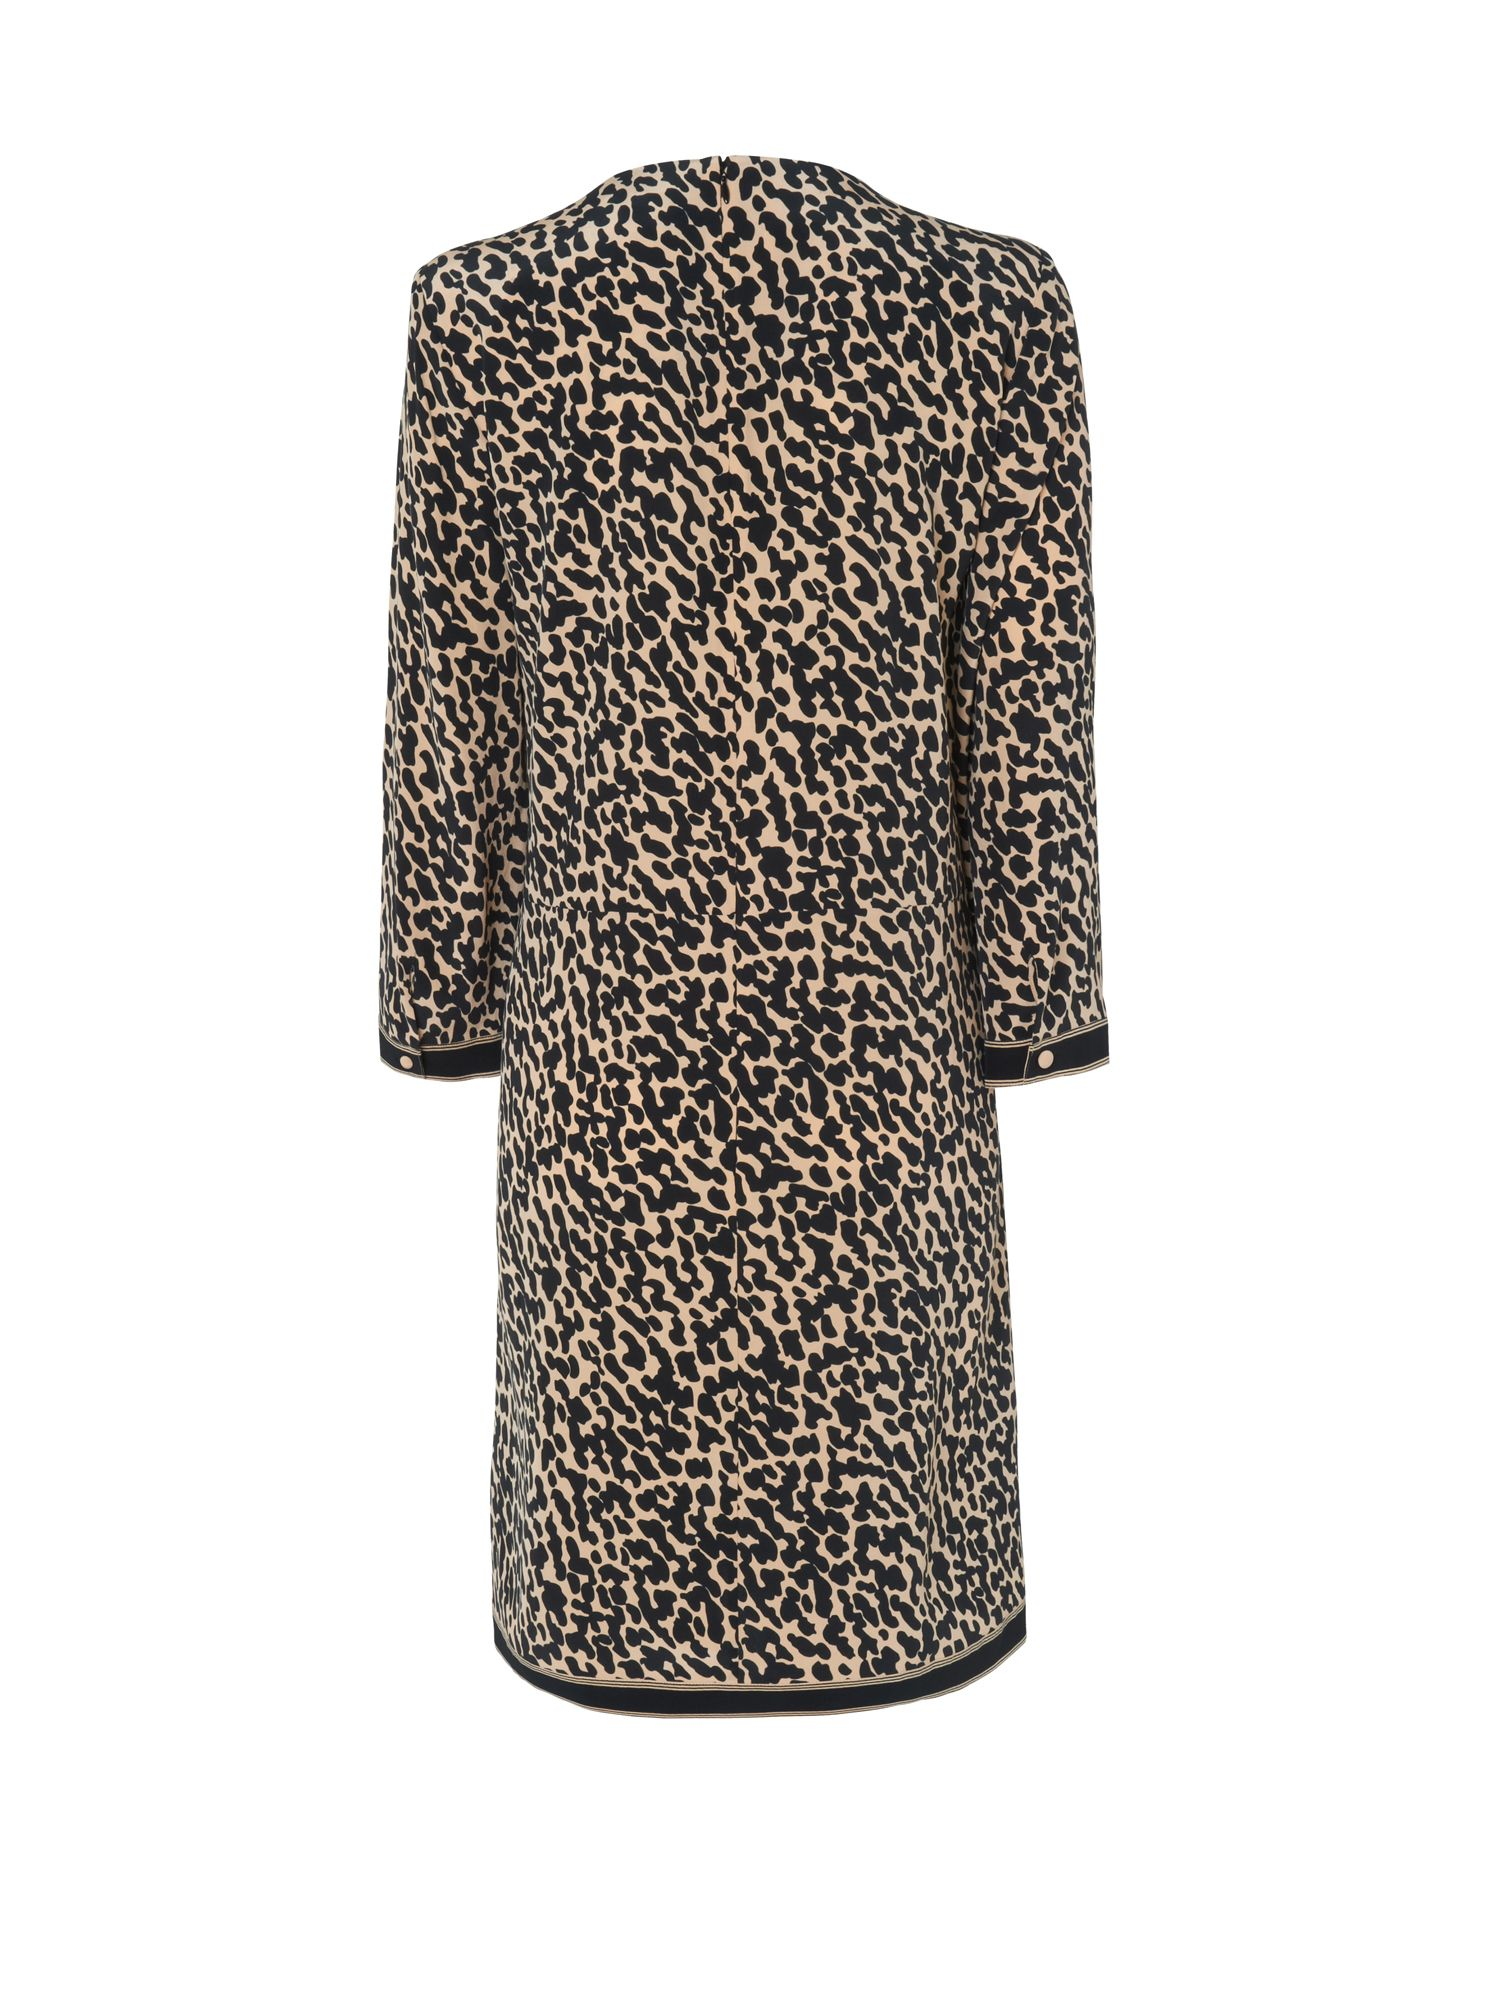 Cheetah tunic dress